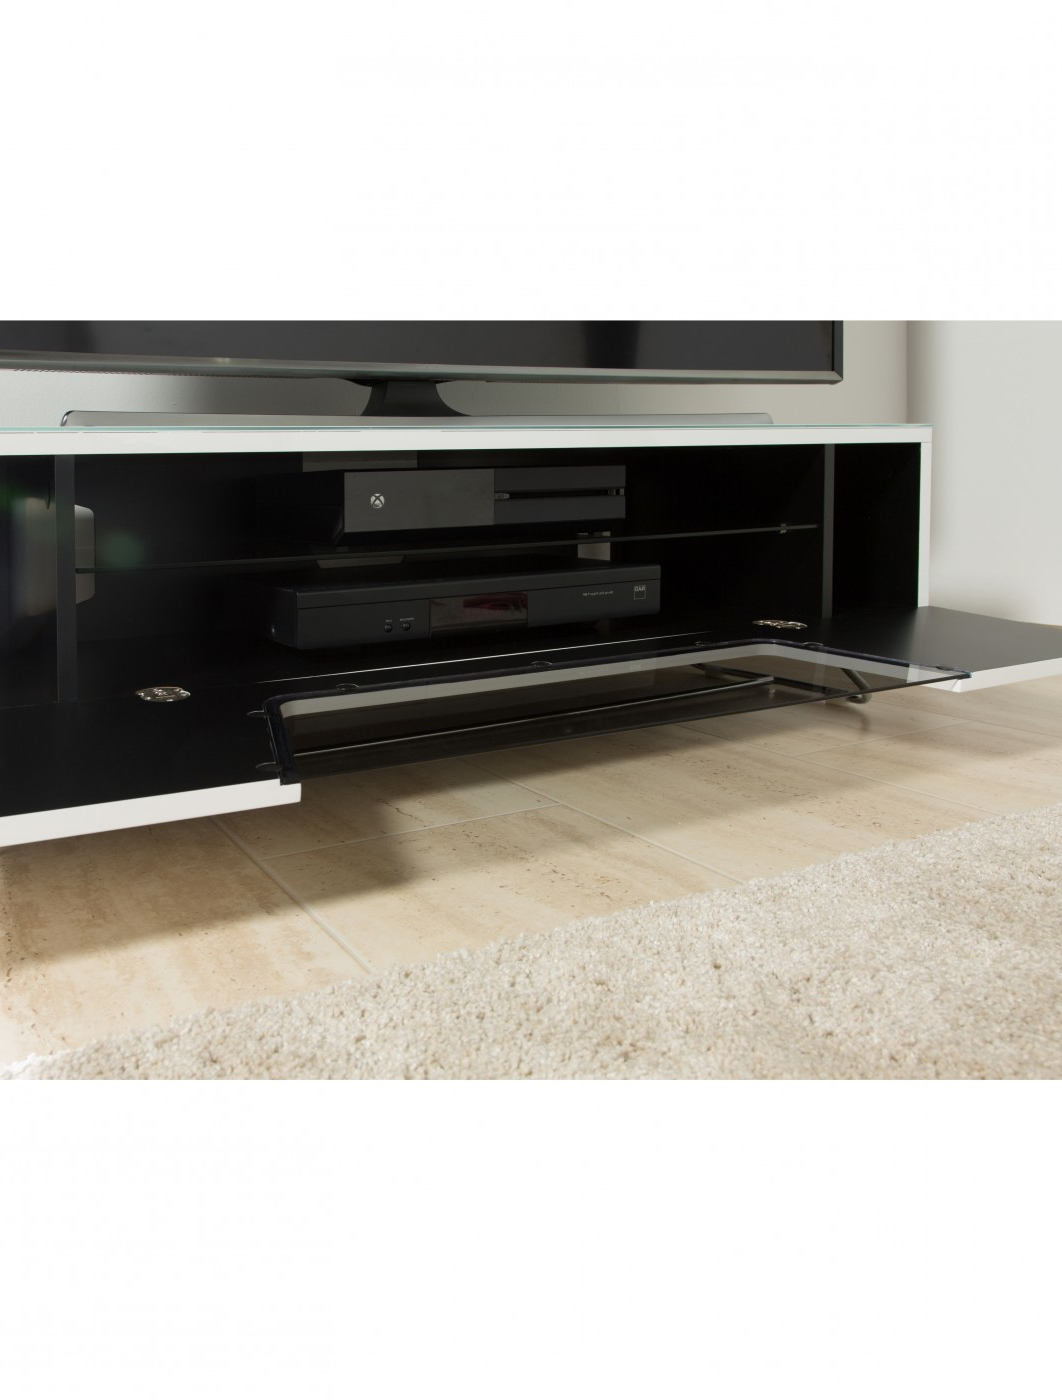 Alphason Chromium Tv Stand Cro2 1200cb Wht   121 Tv Mounts Intended For Chromium Tv Stands (View 3 of 20)